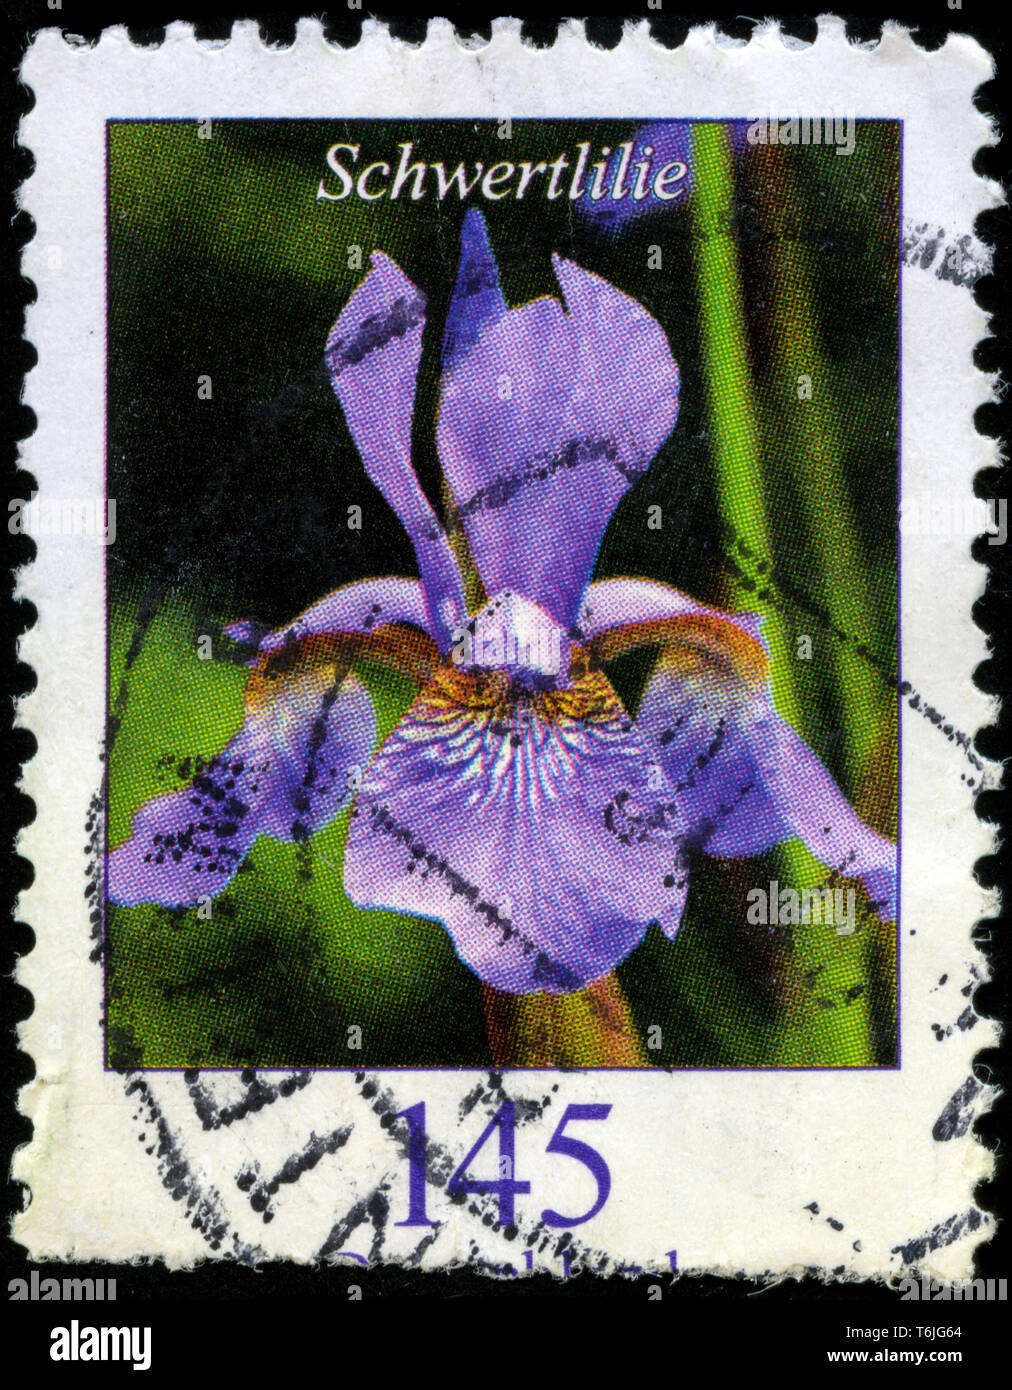 Postage stamp from the Federal Republic of Germany in the Flowers series issued in 2005 - Stock Image